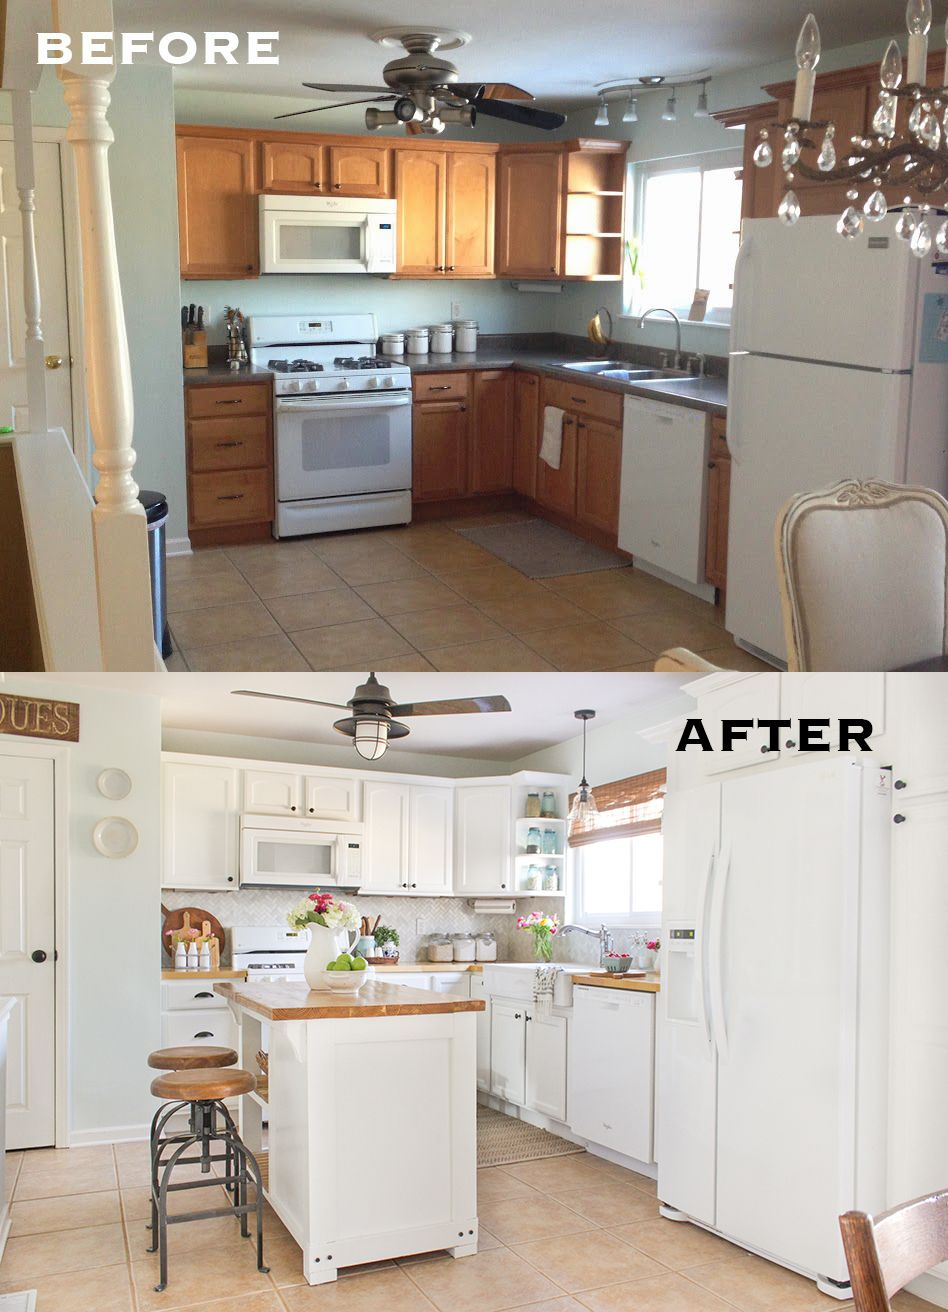 Before And After 7 Amazing Kitchen Makeovers HuffPost